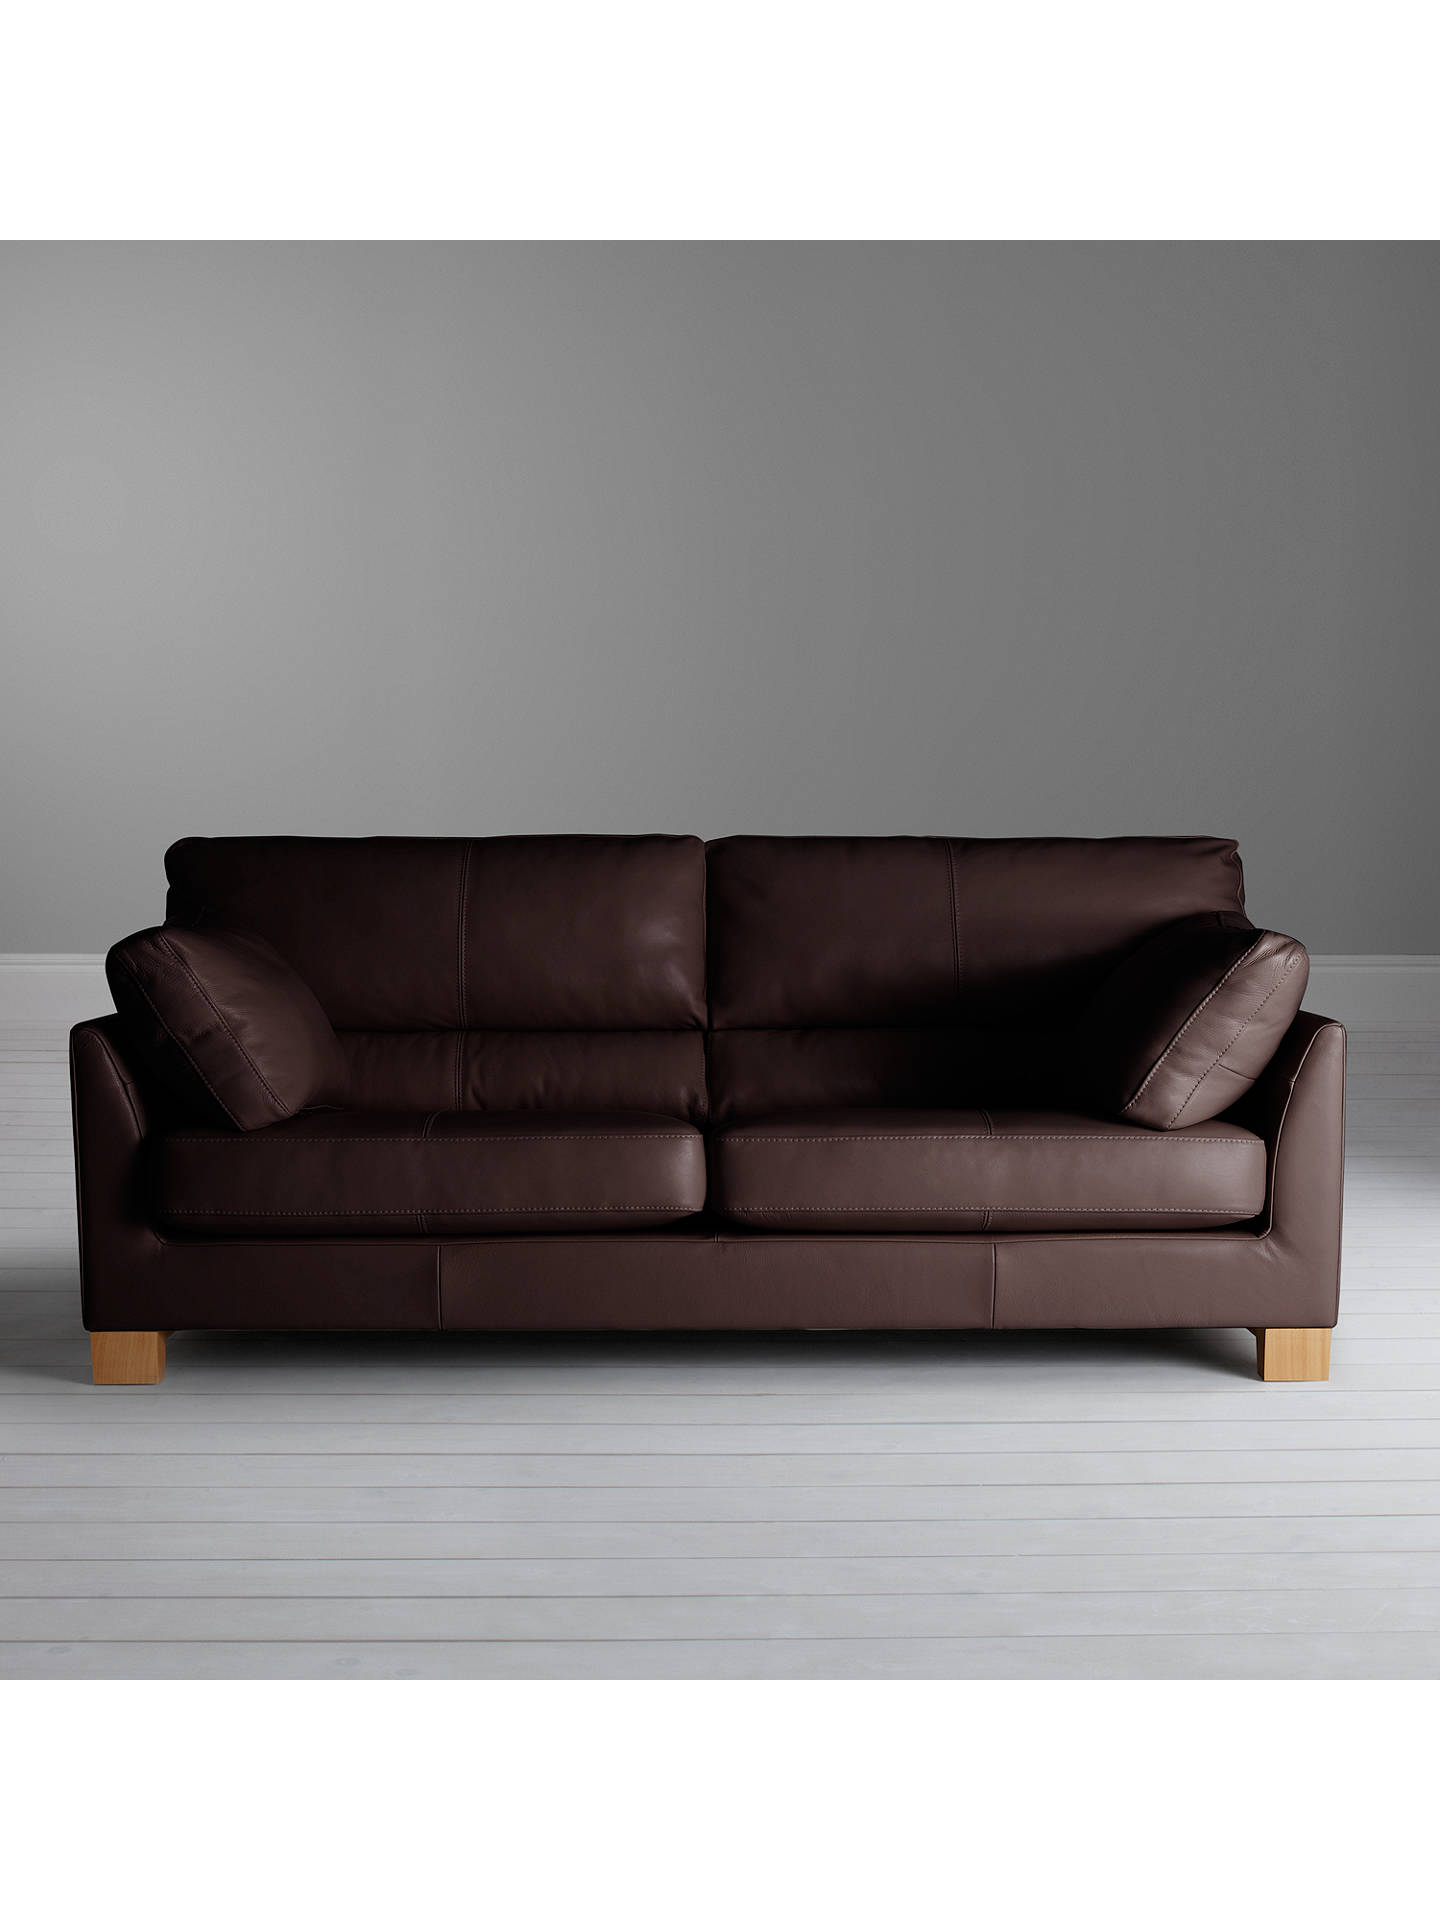 John Lewis & Partners Ikon High Back Grand 4 Seater Leather Sofa, Nature  Brown